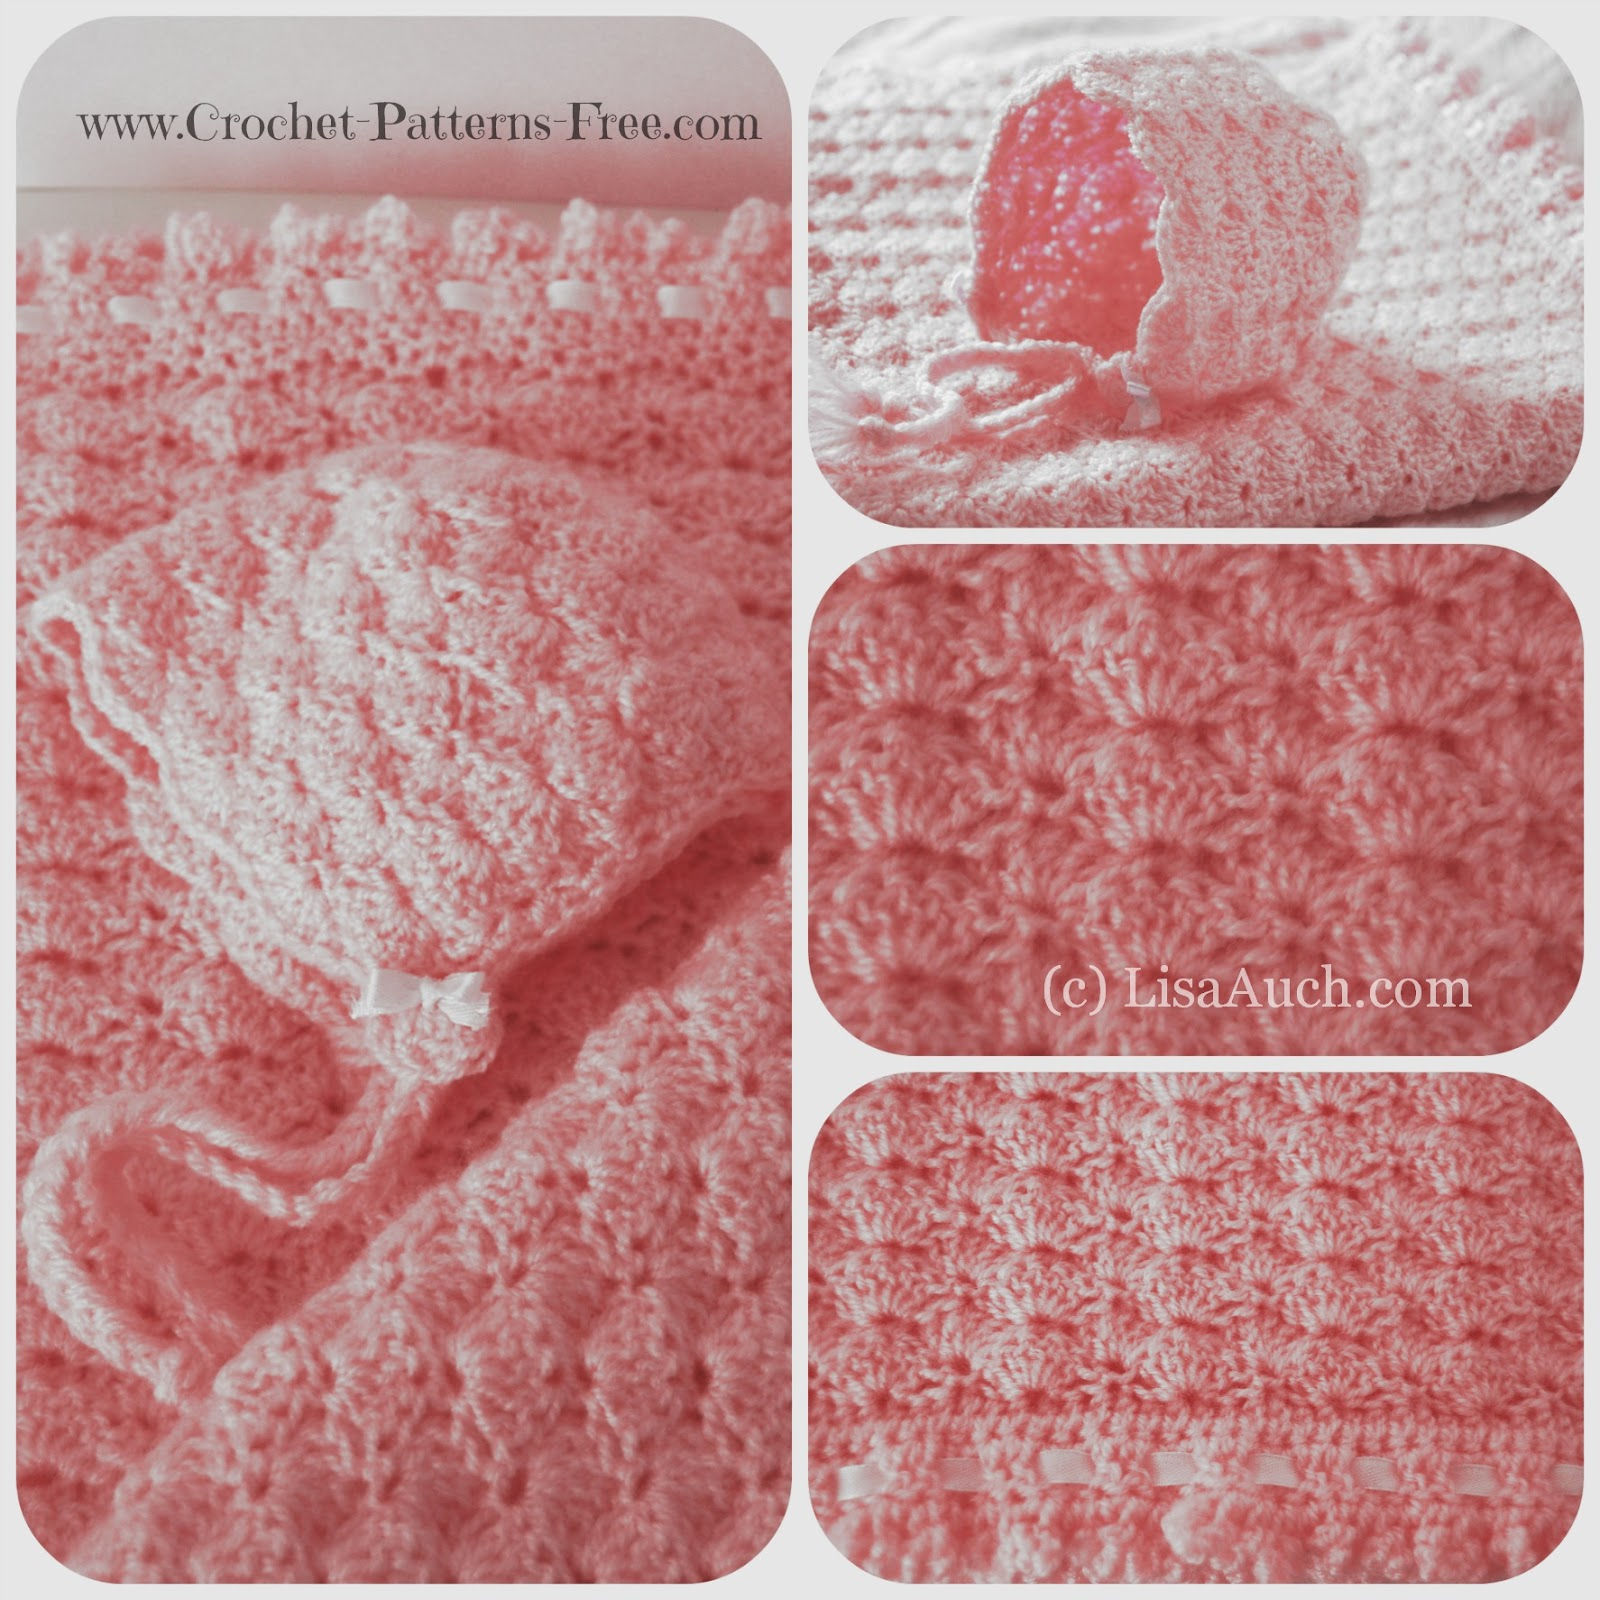 Free Crochet Baby Blanket Pattern in Shell Stitch -baby bonnet pattern-free crochet pattern